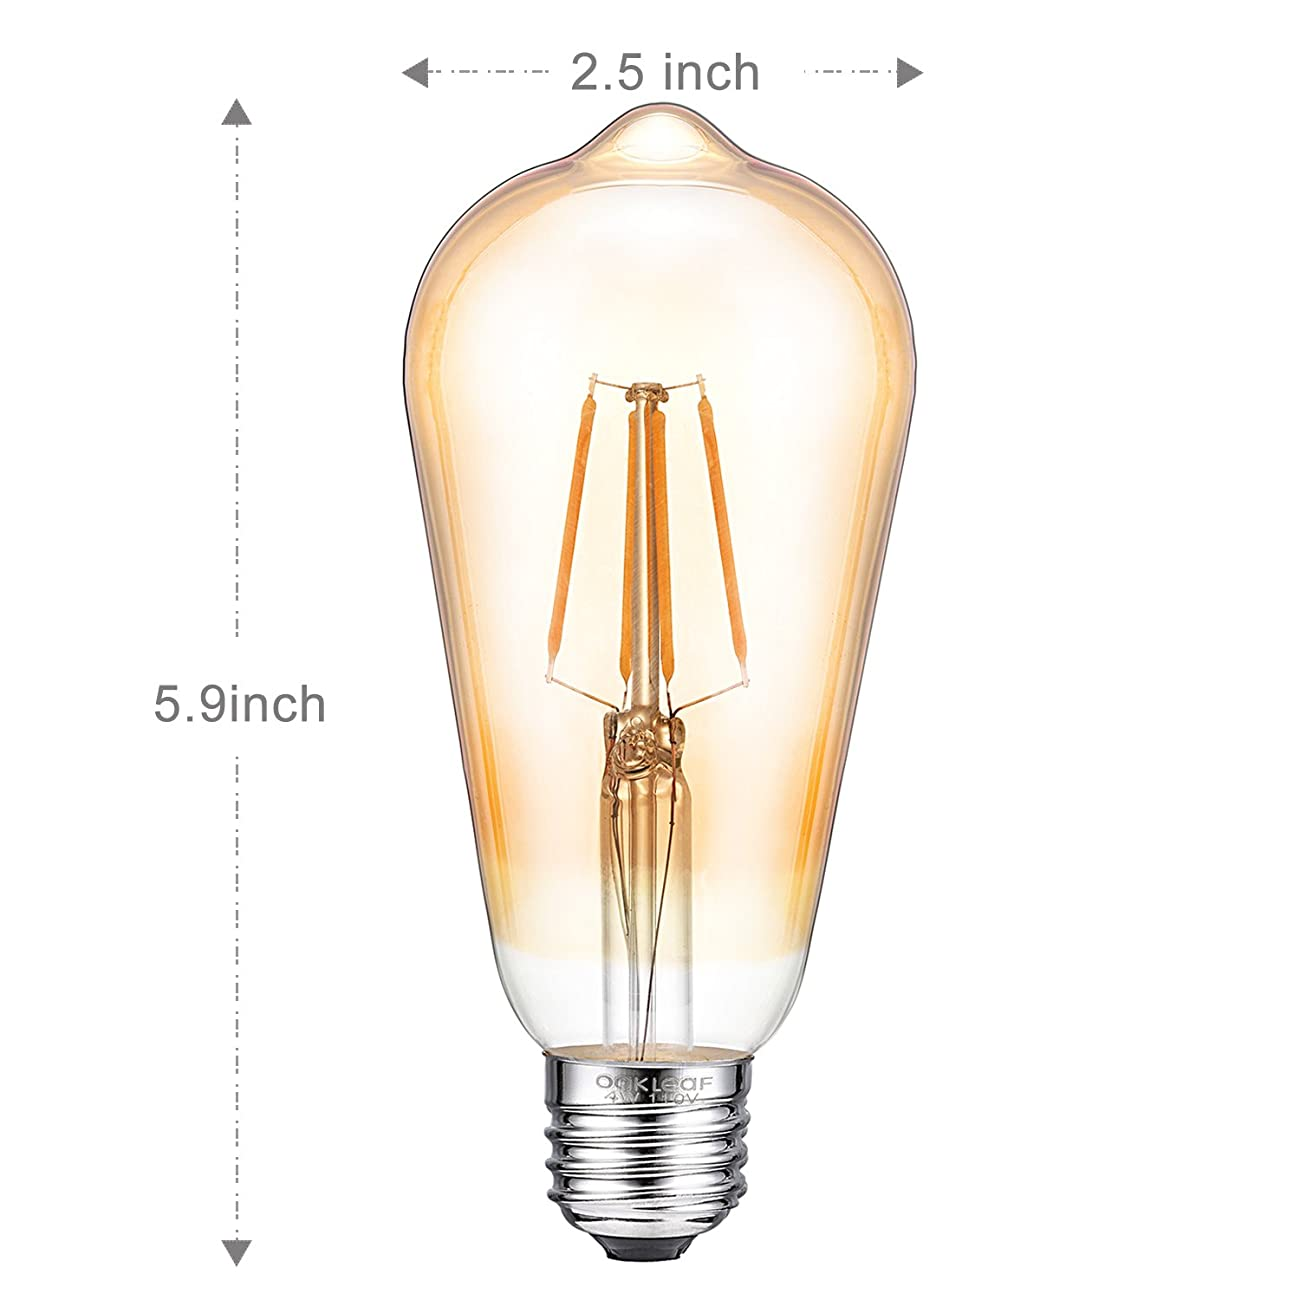 Antique LED Bulb, Oak Leaf 4W ST64 Vintage Antique Style Edison Bulb E26 2200K Warm White LED Light 40W Equivalent, 400lm, Amber Glass, Pack of 6 2